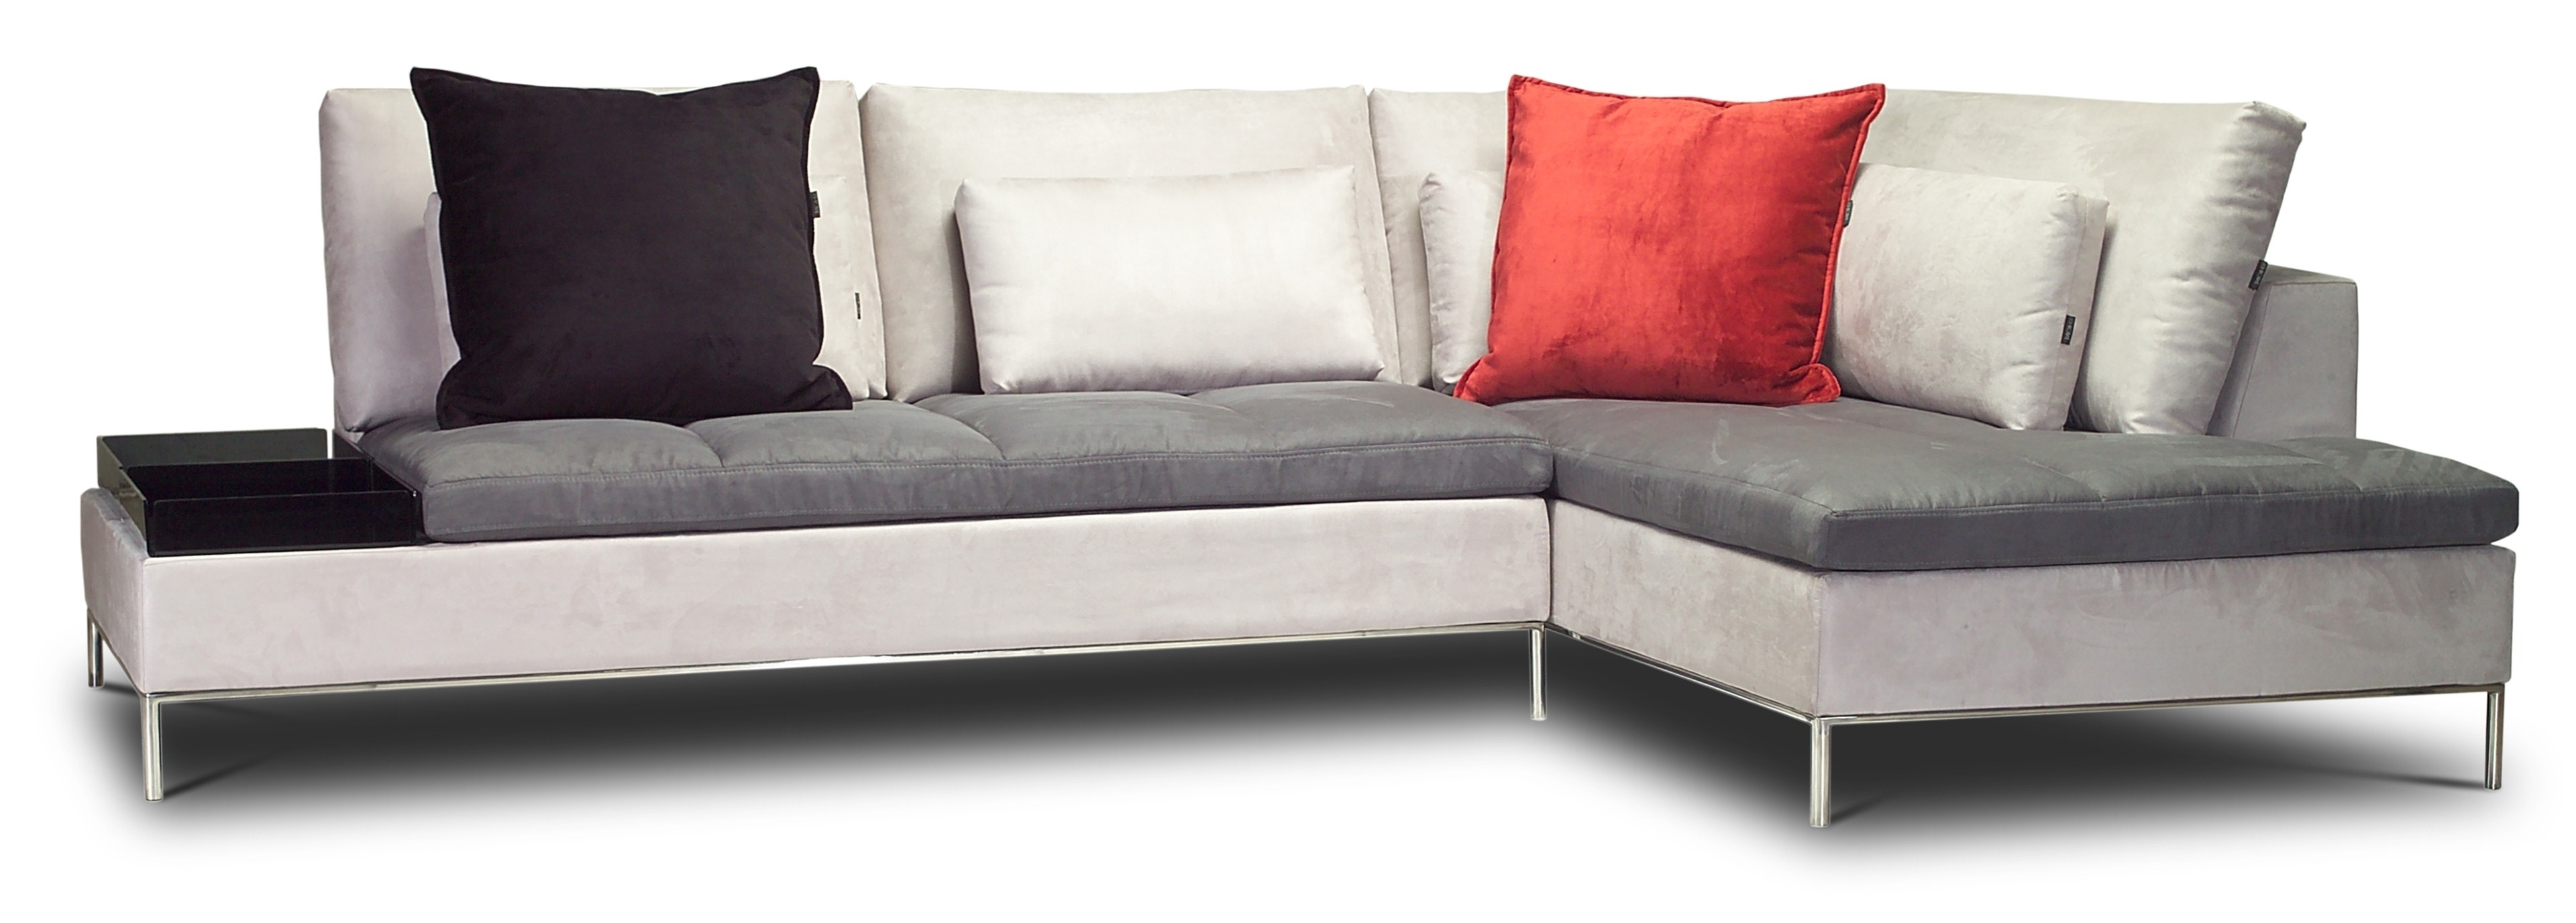 Jackknife Sectional Sofa Bed • Sofa Bed Regarding Most Recently Released Dallas Texas Sectional Sofas (View 14 of 20)